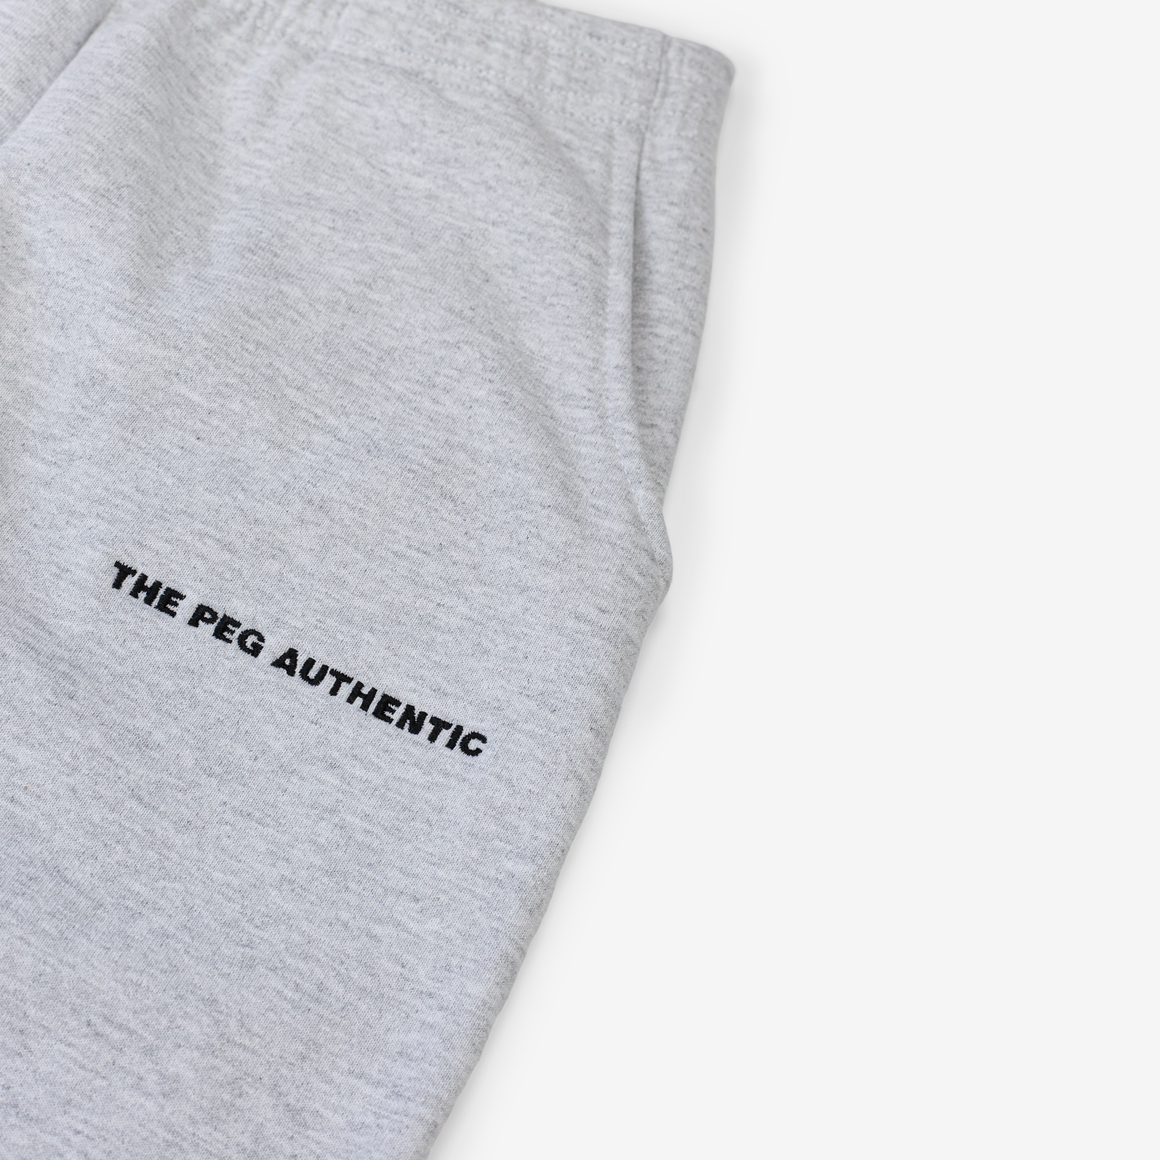 Heavy Weight 14oz Premium Classic Sweatpant (Light Heather Grey)